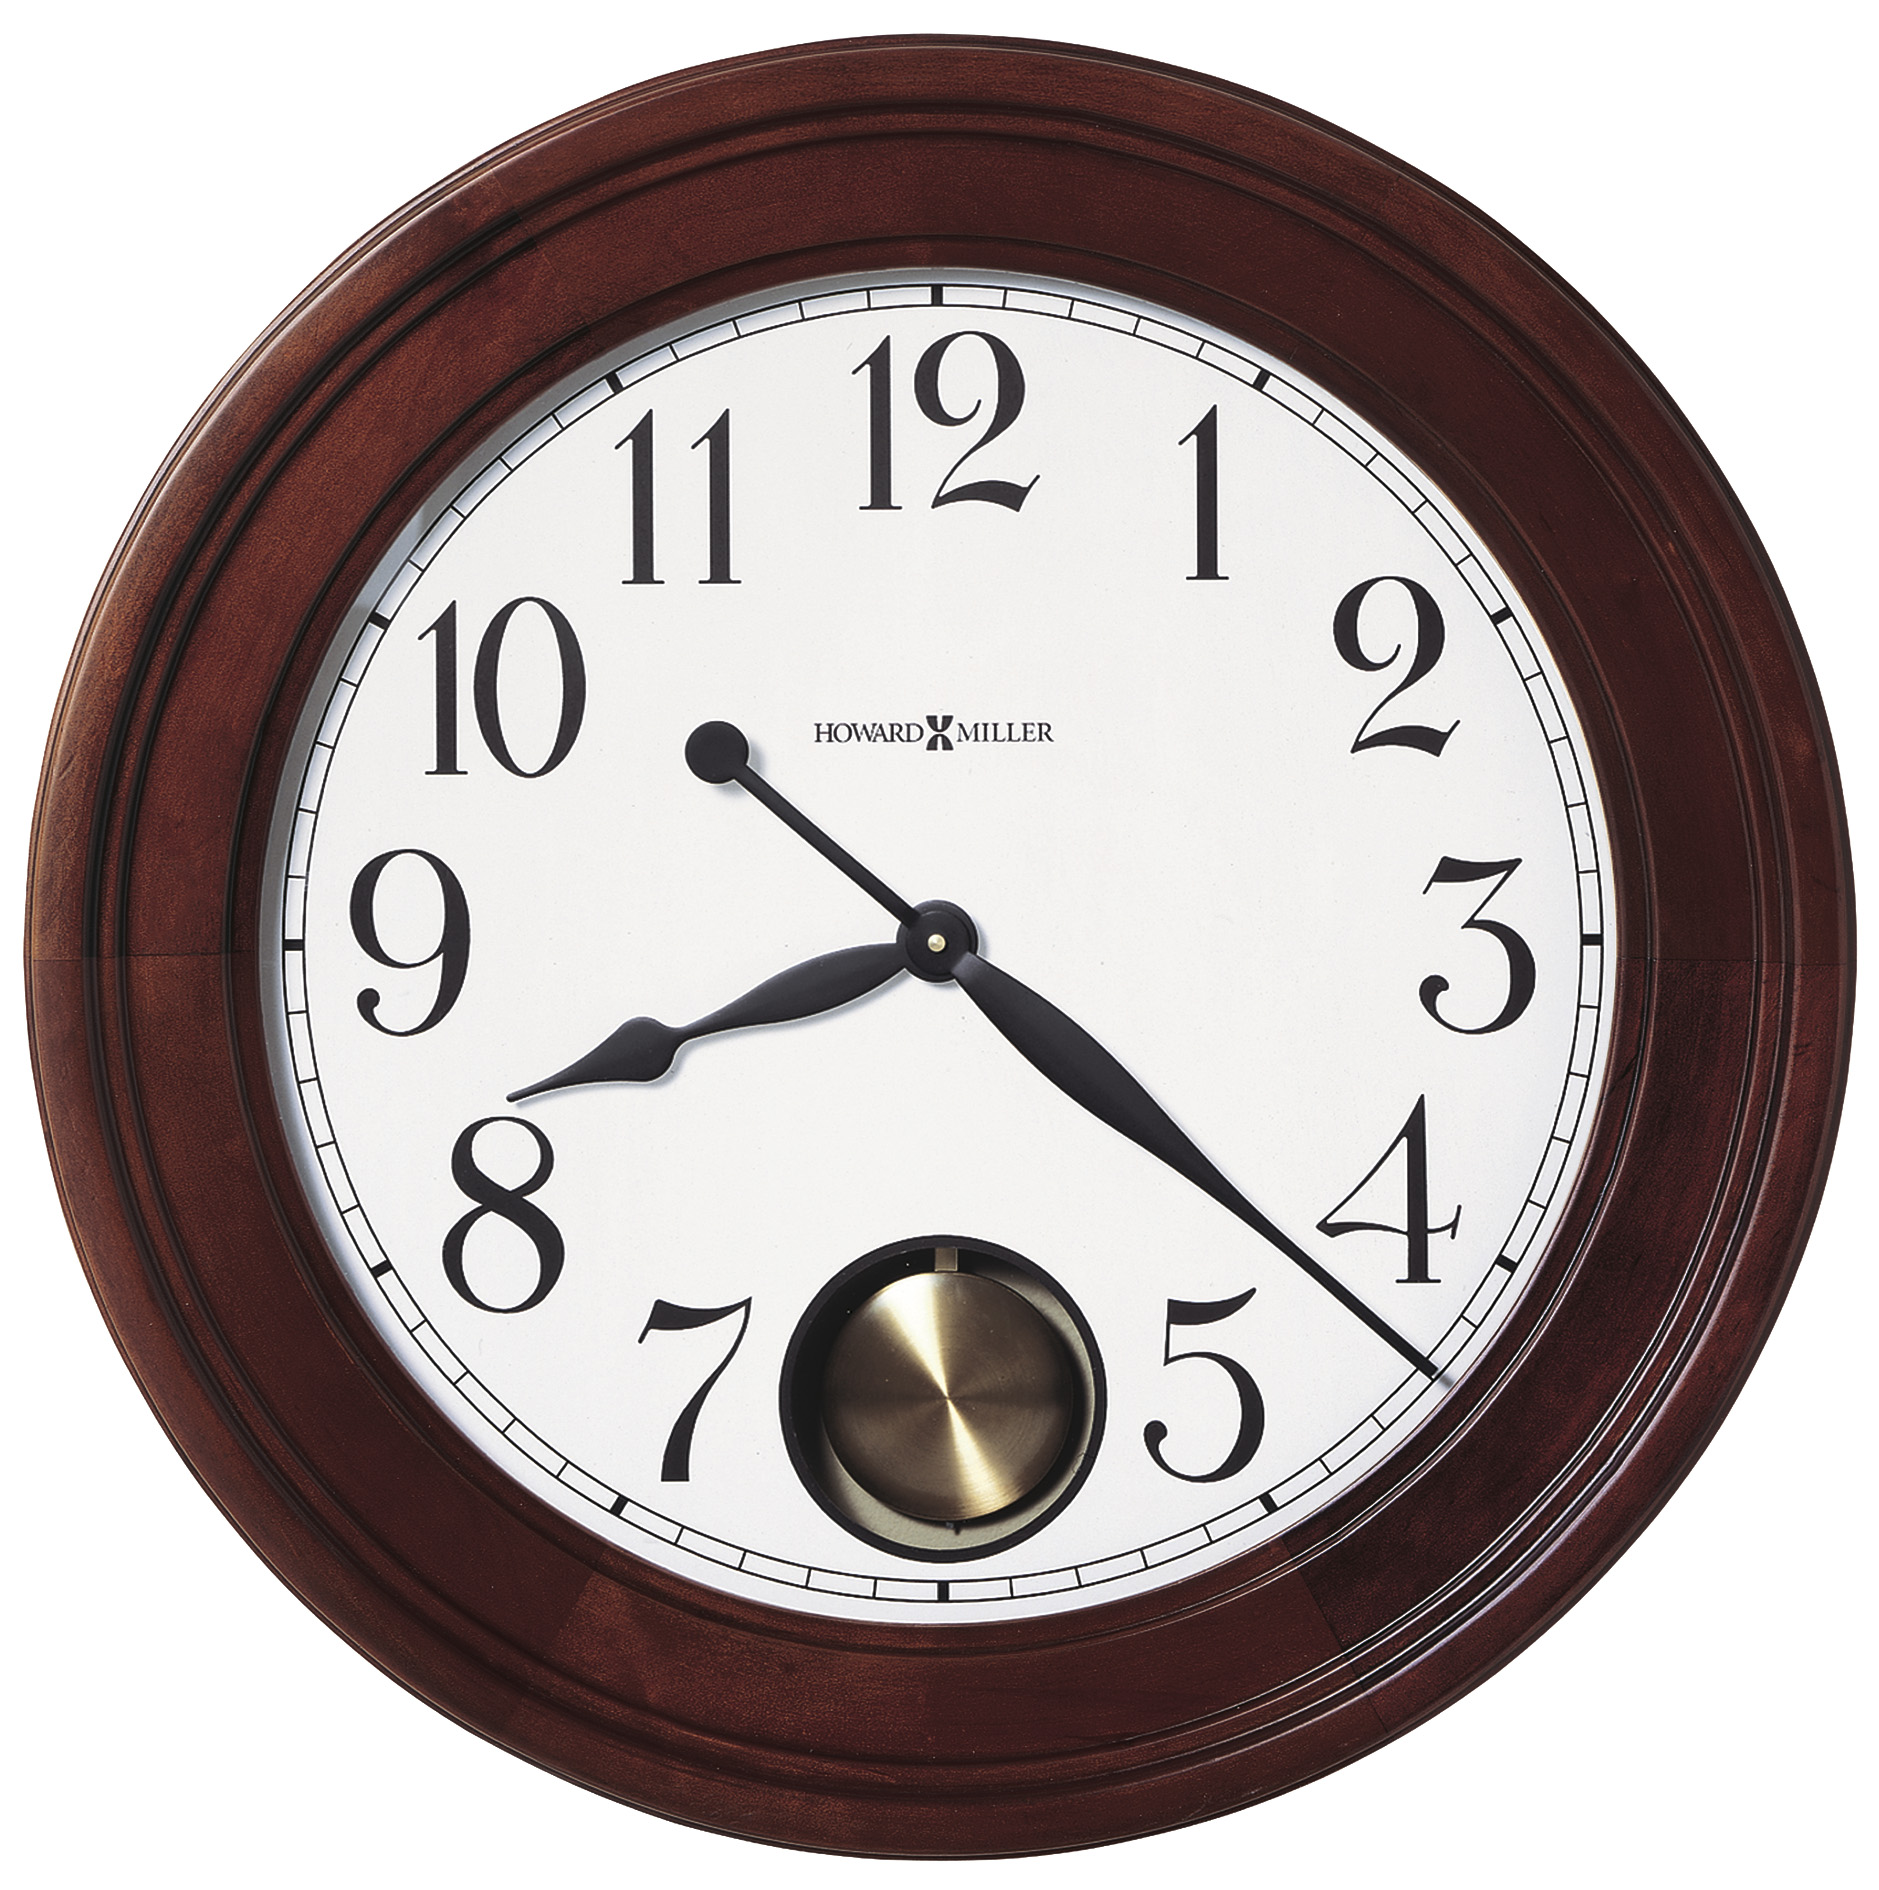 Big Clocks For Wall Large Wall Clocks Oversized Big Clocks At Clockshops